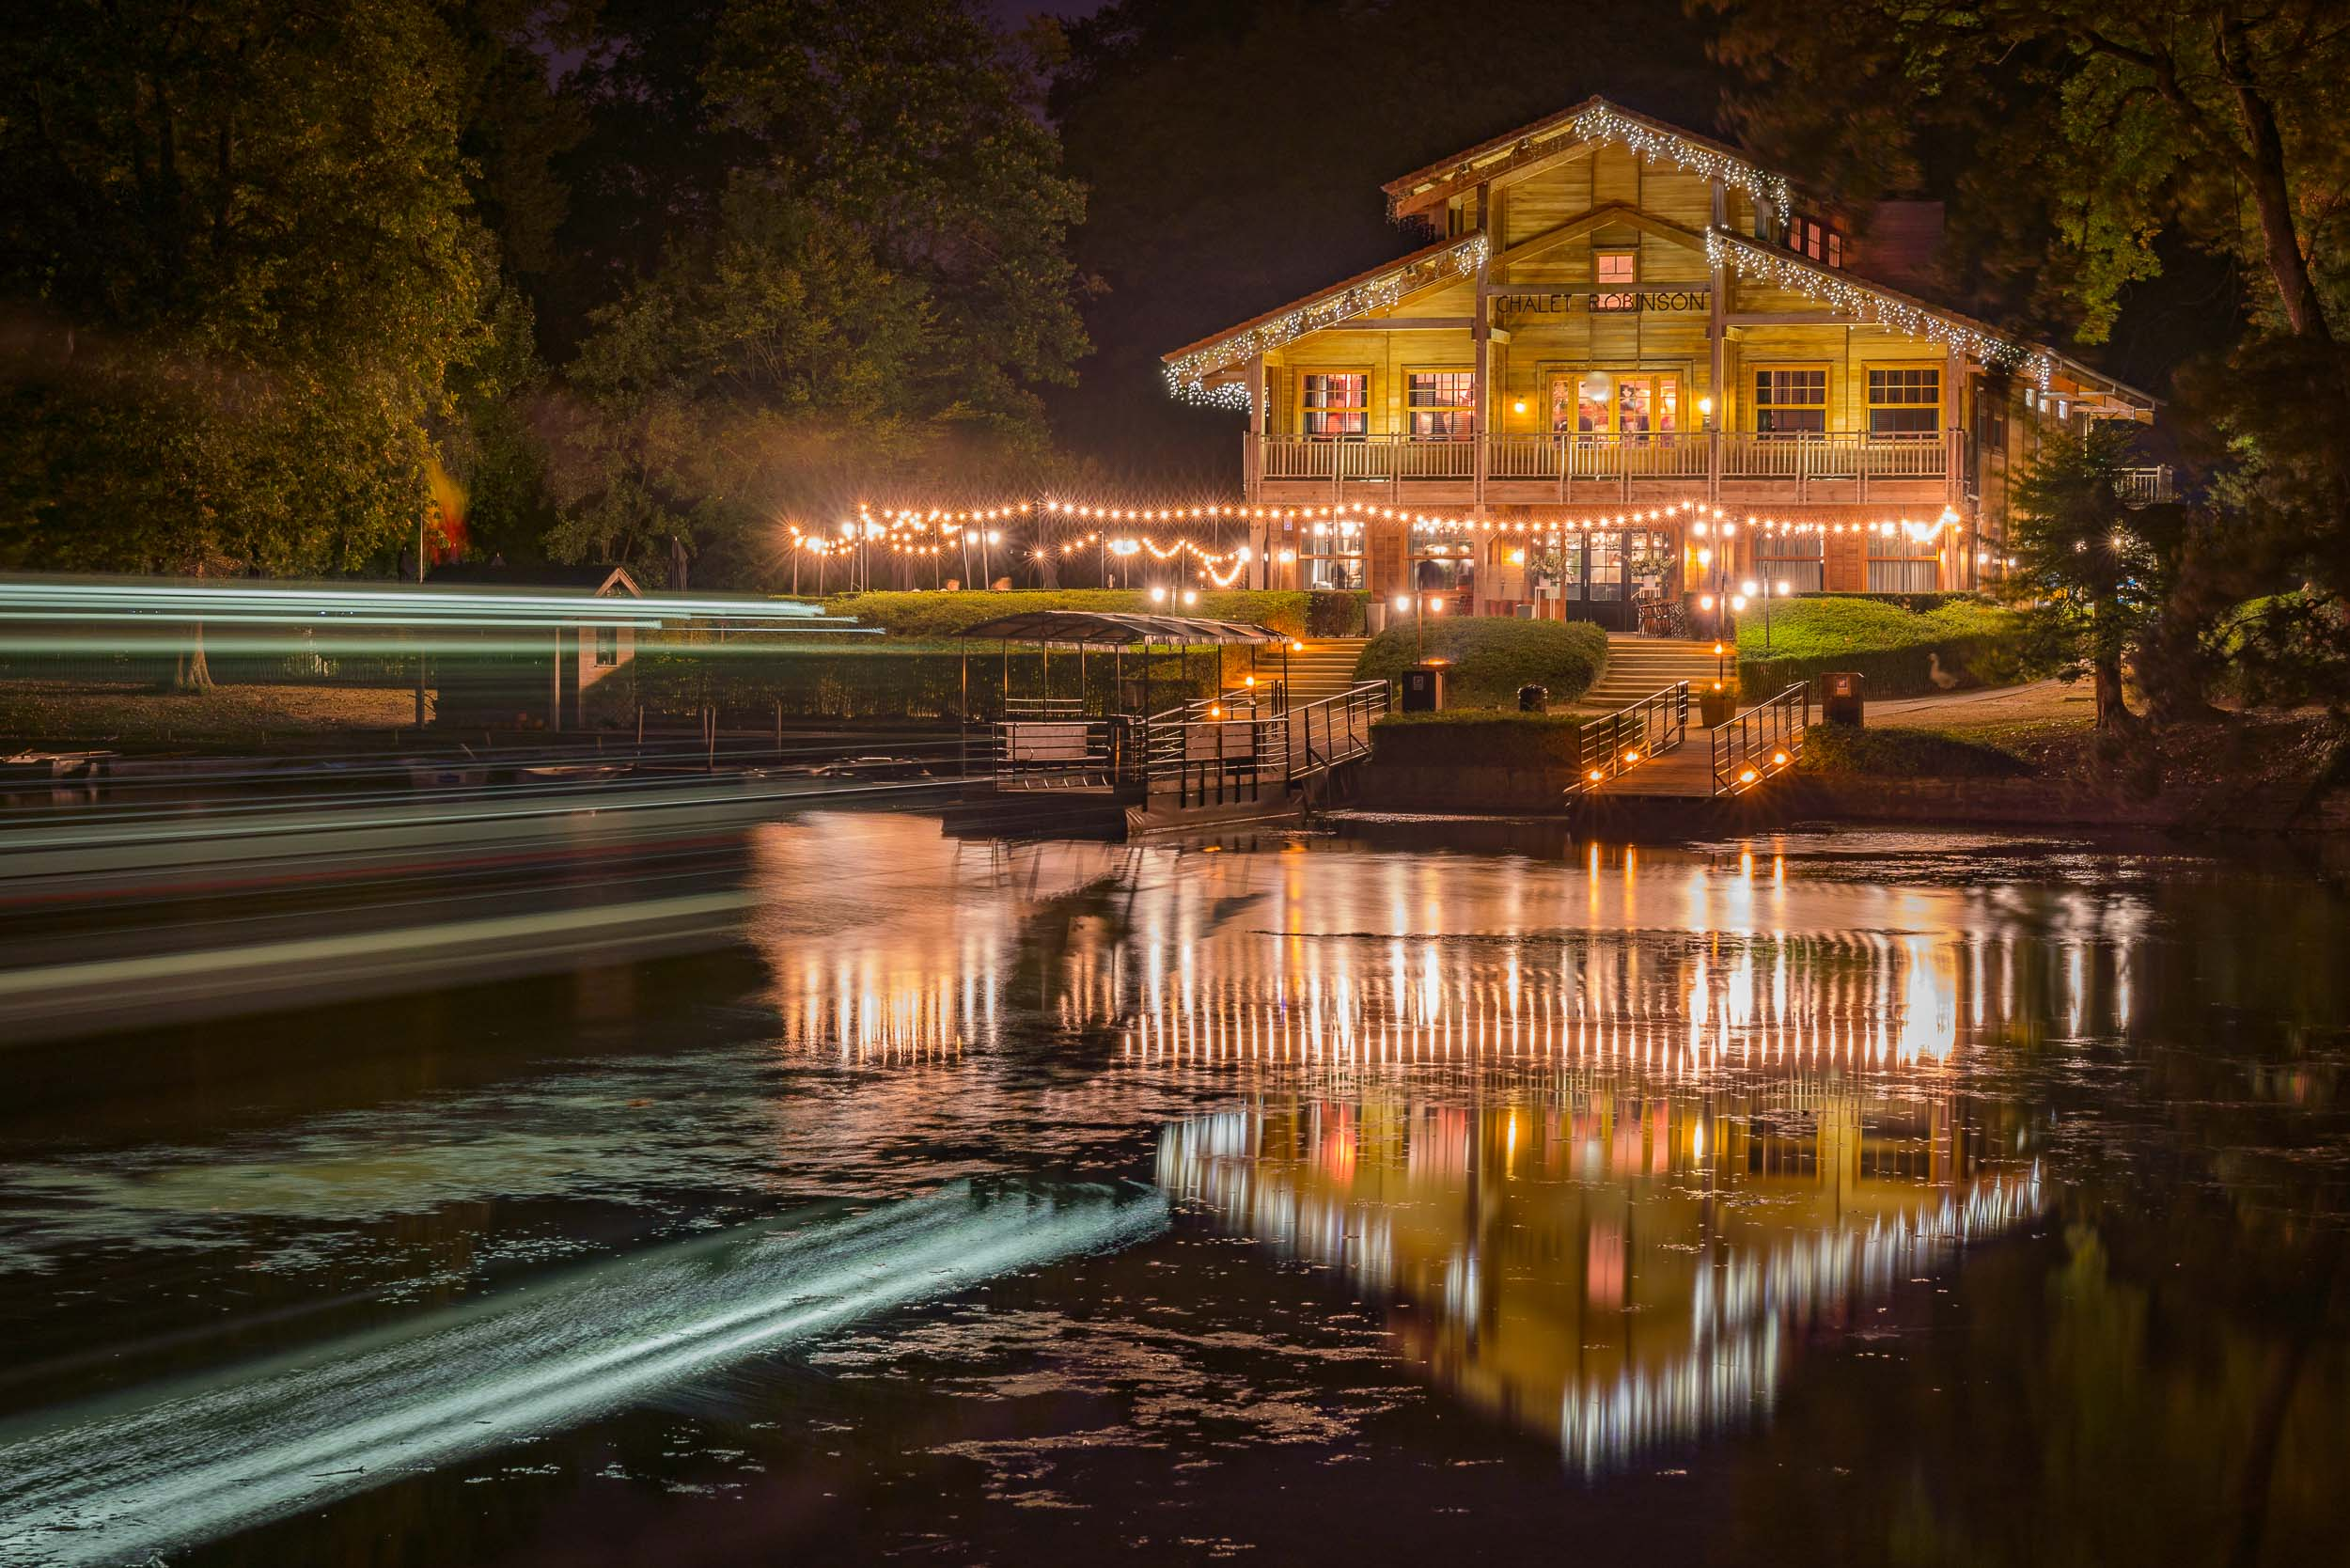 Night Photography of Chalet Robinson